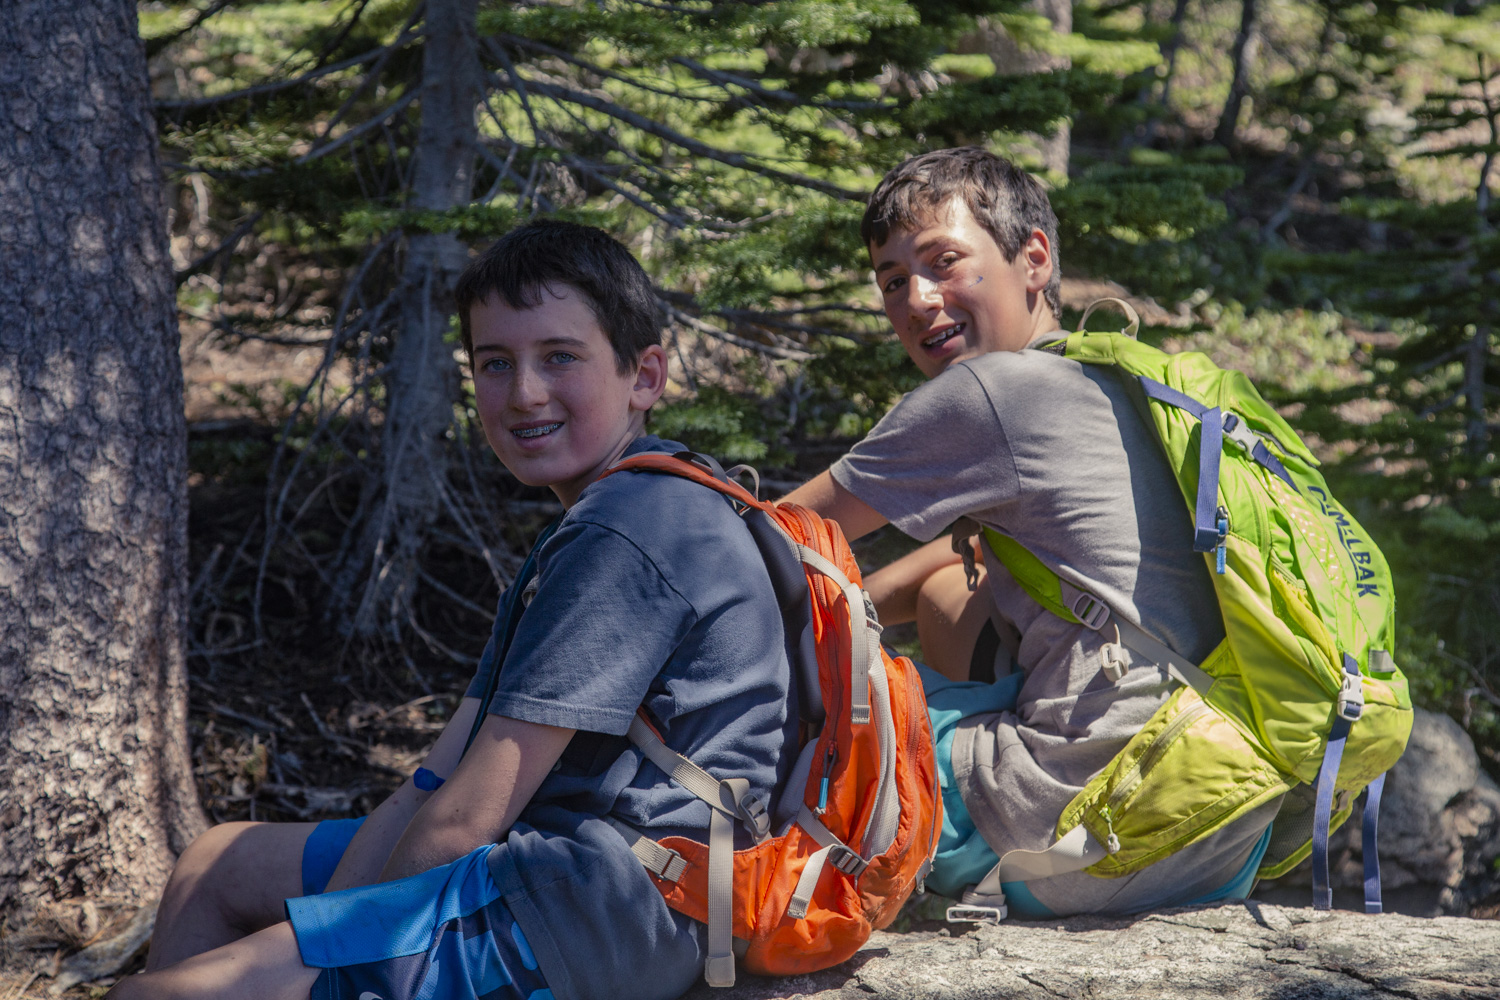 Summer camp can help your son's independence.